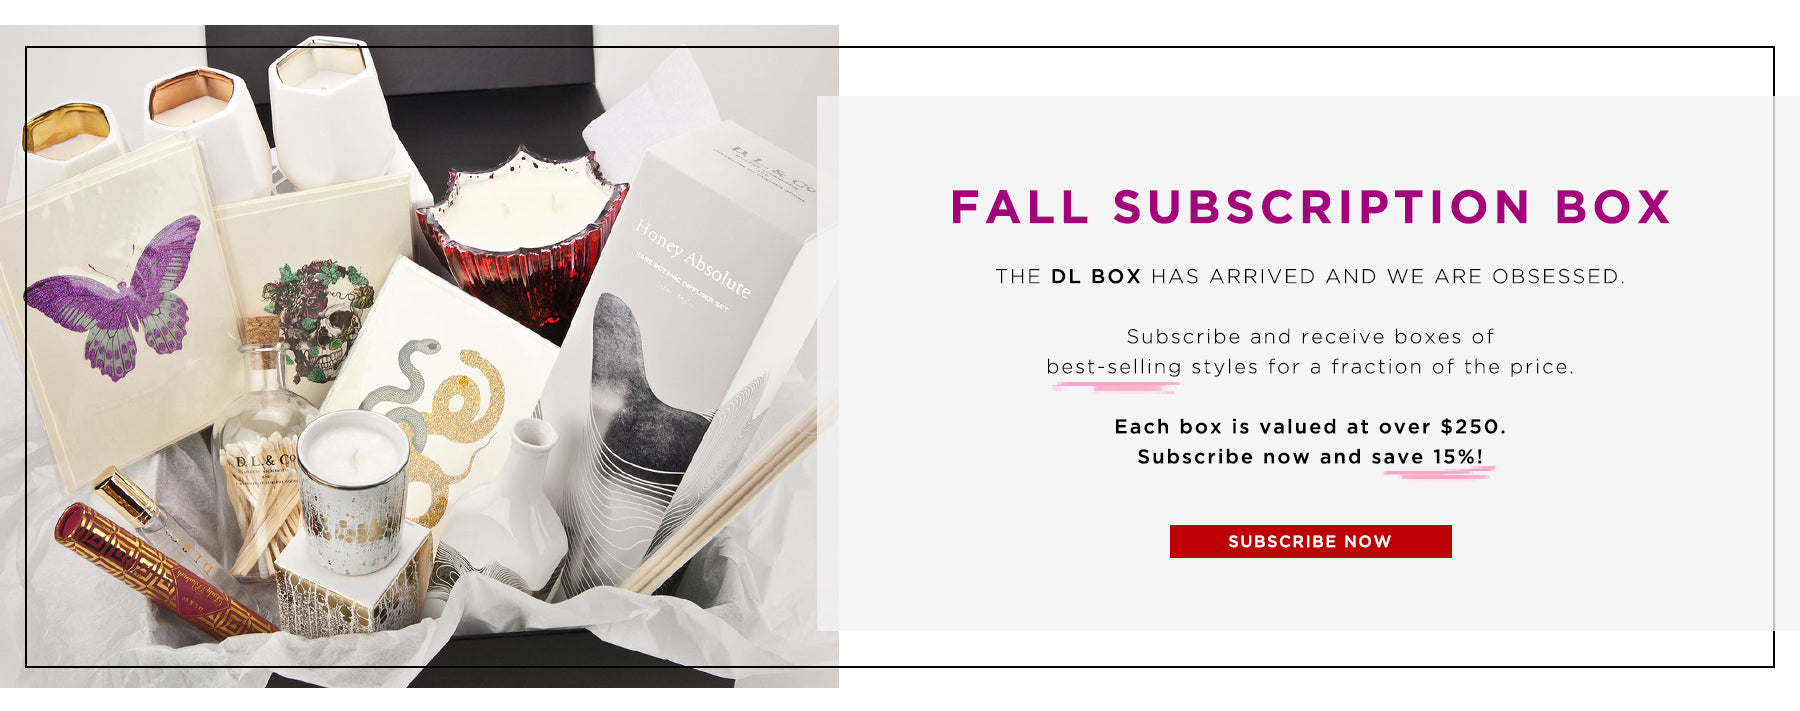 Fall Subscription Box. Subscribe Now.